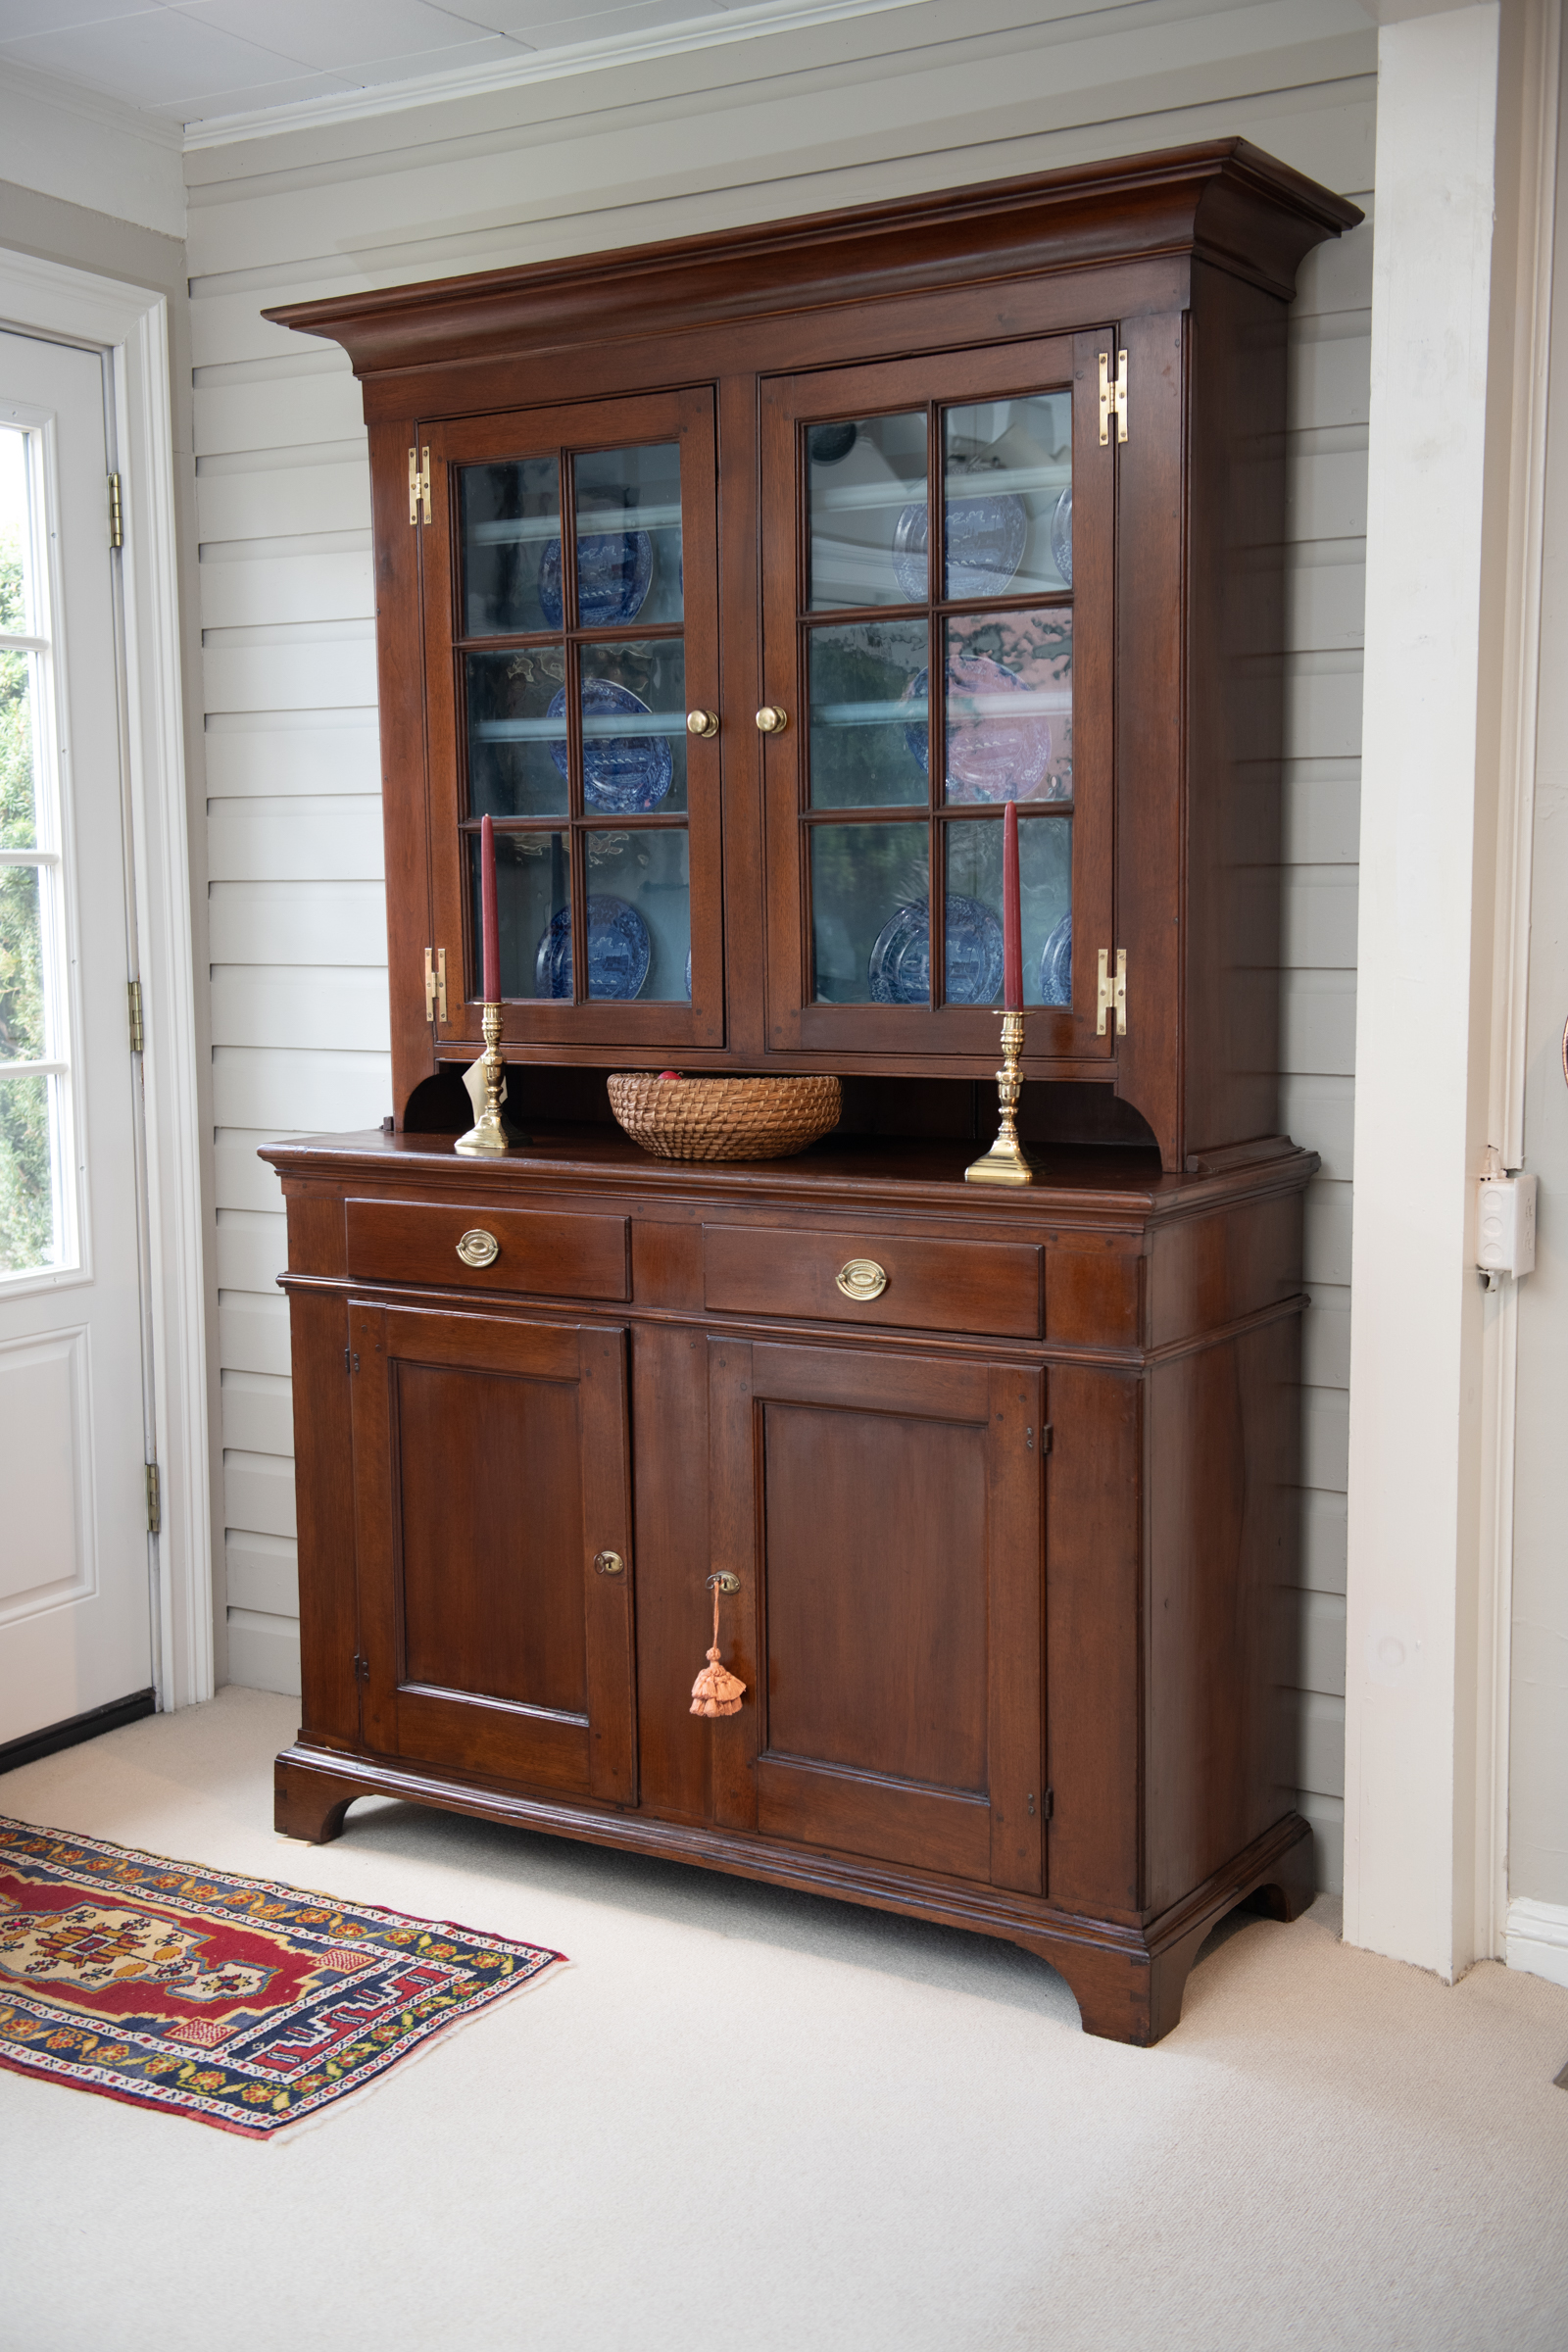 Chippendale Diminutive Walnut Step-Back Cupboard